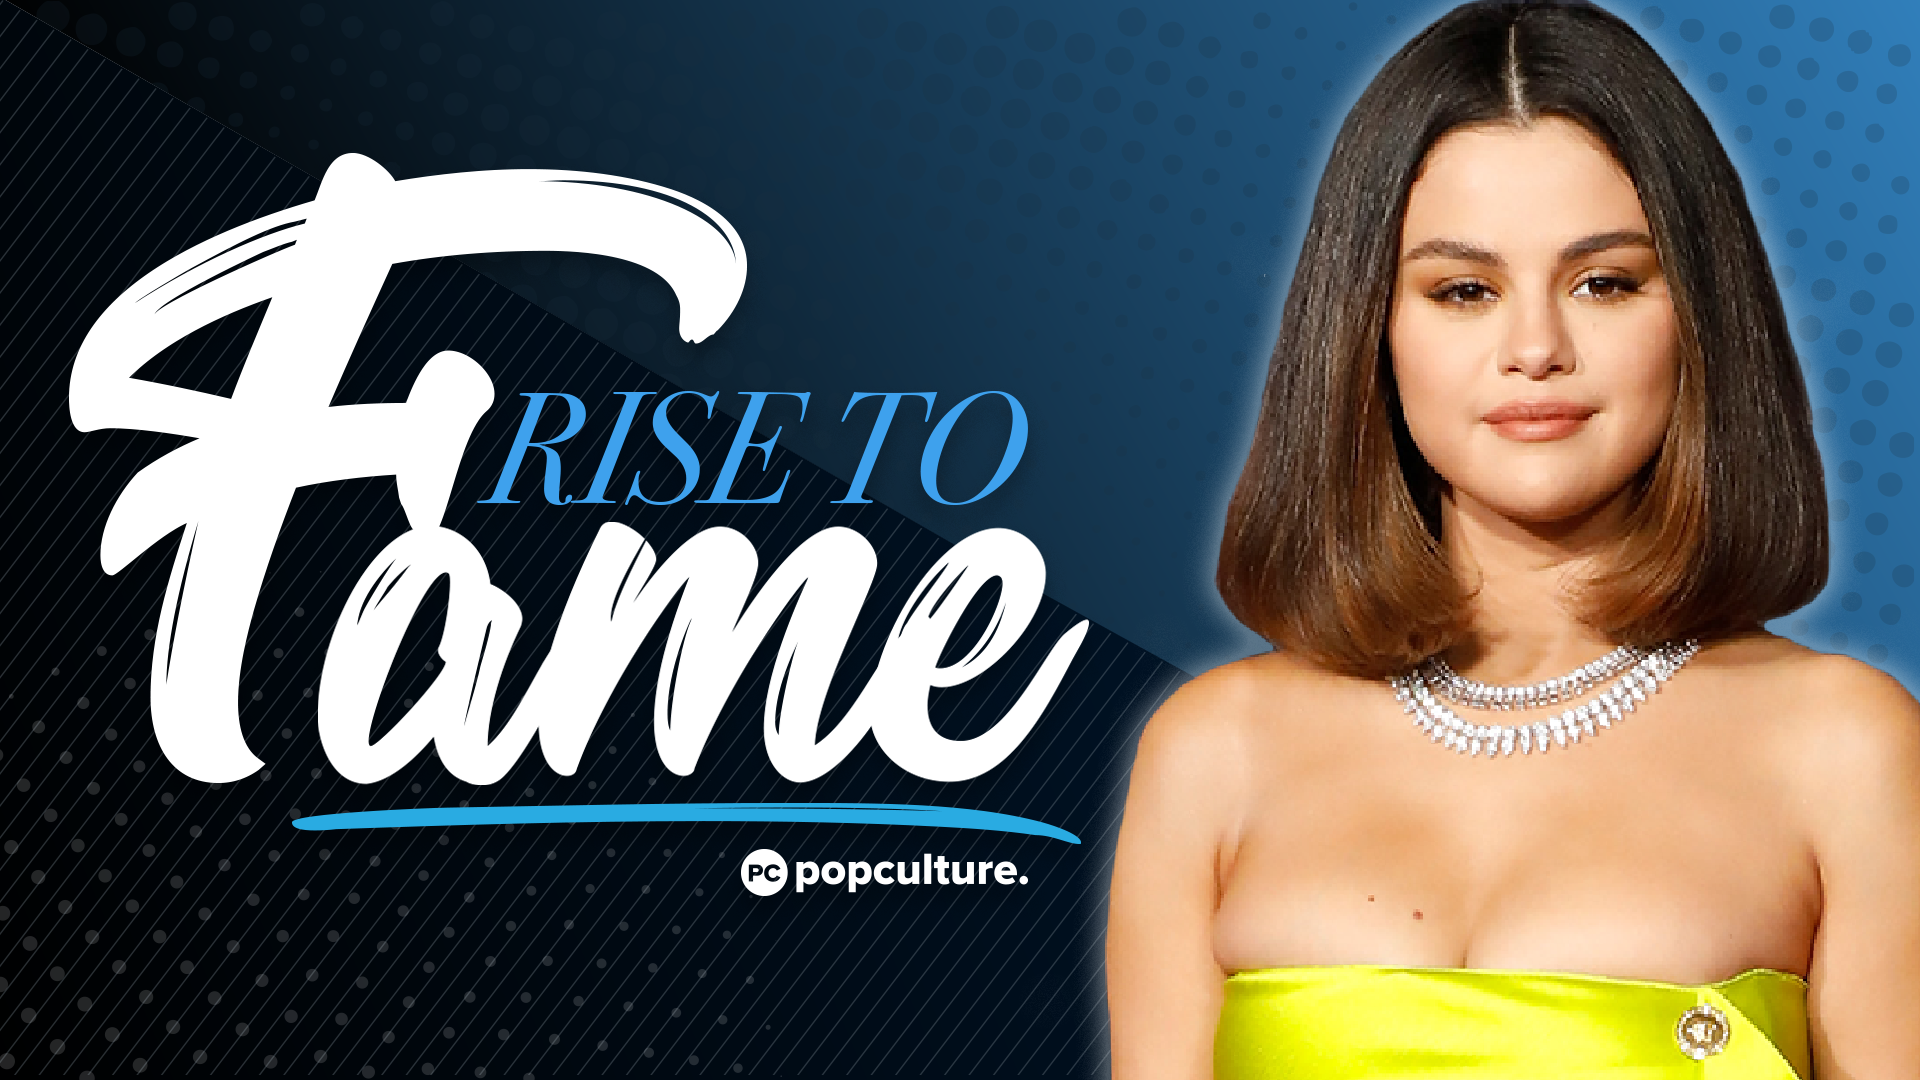 Selena Gomez's Rise to Fame screen capture